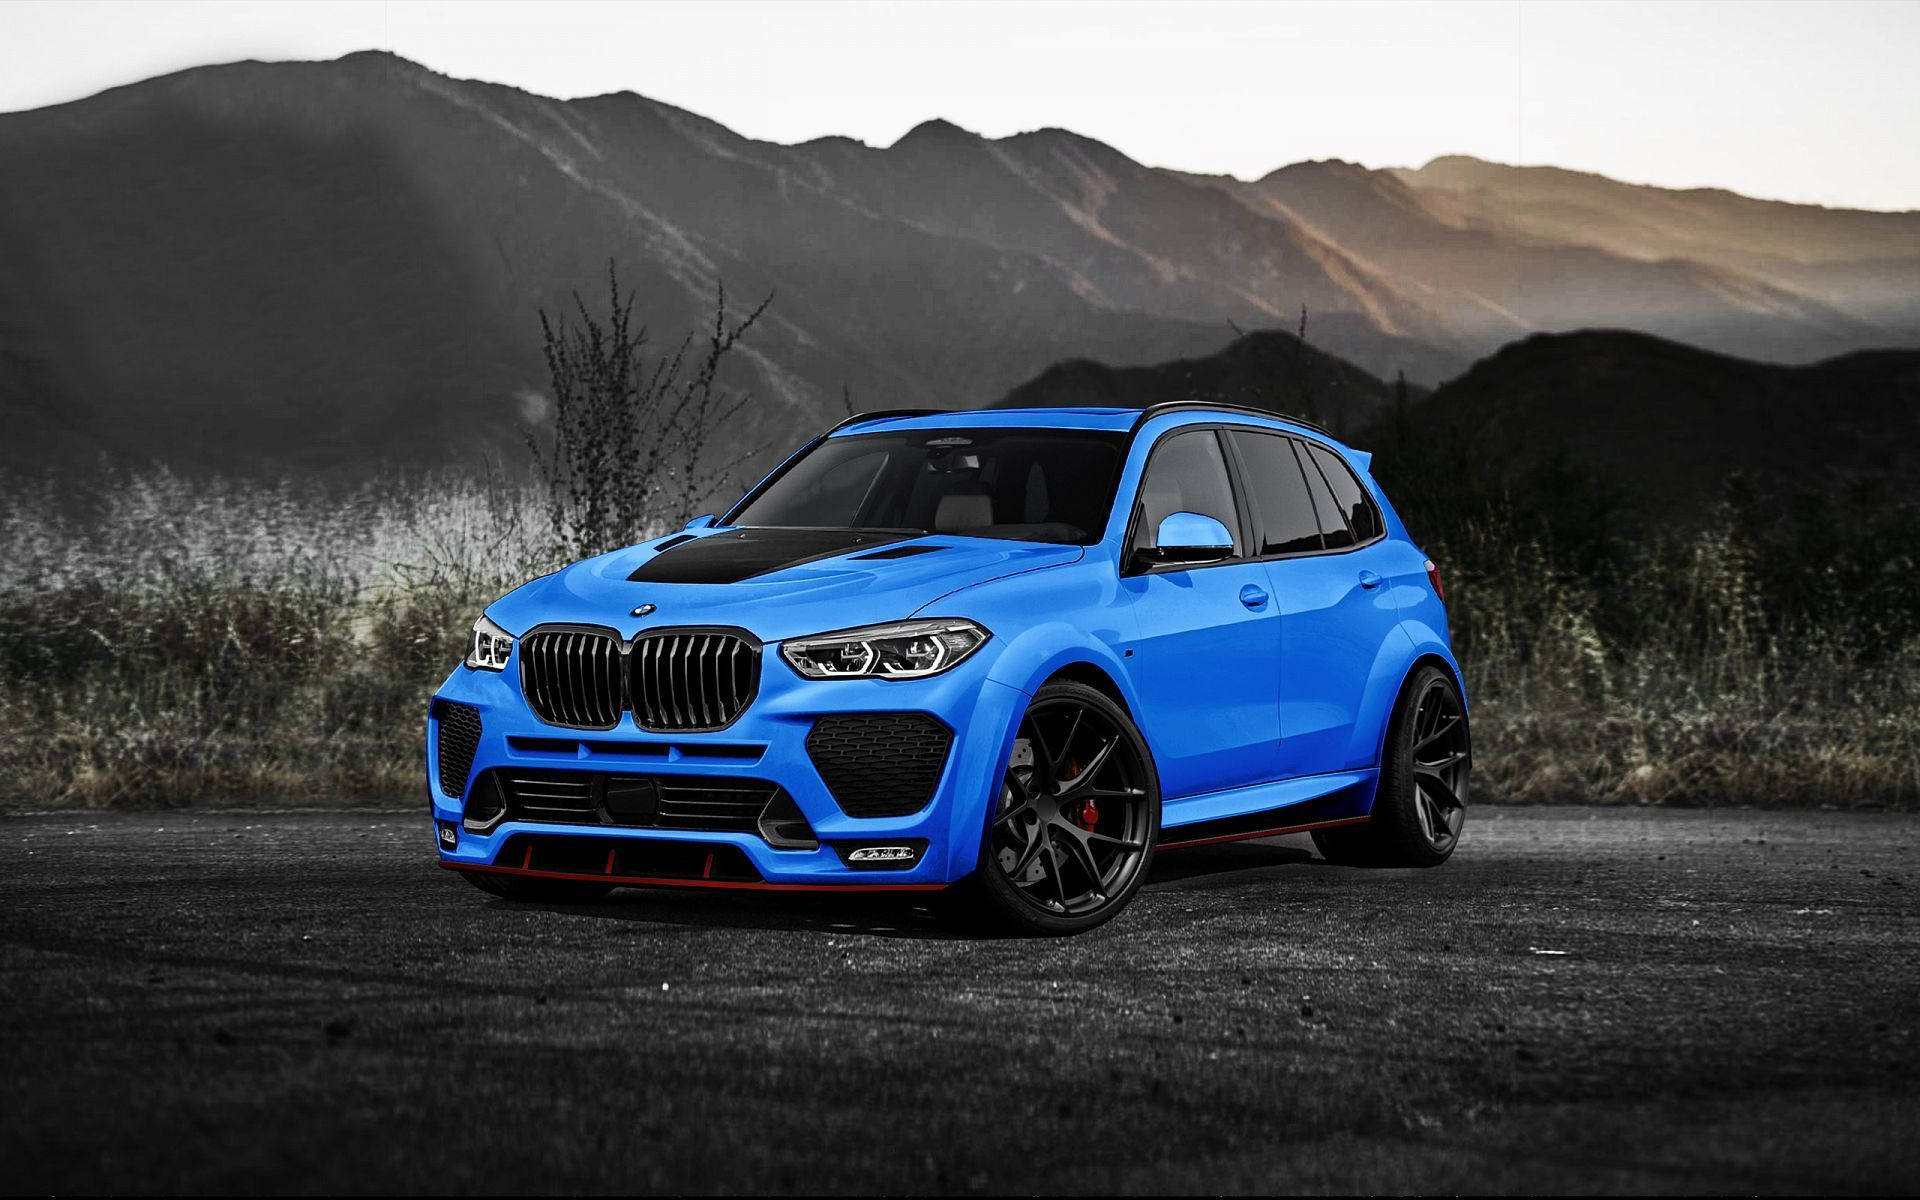 Renegade body kit for BMW X5 G05 new model